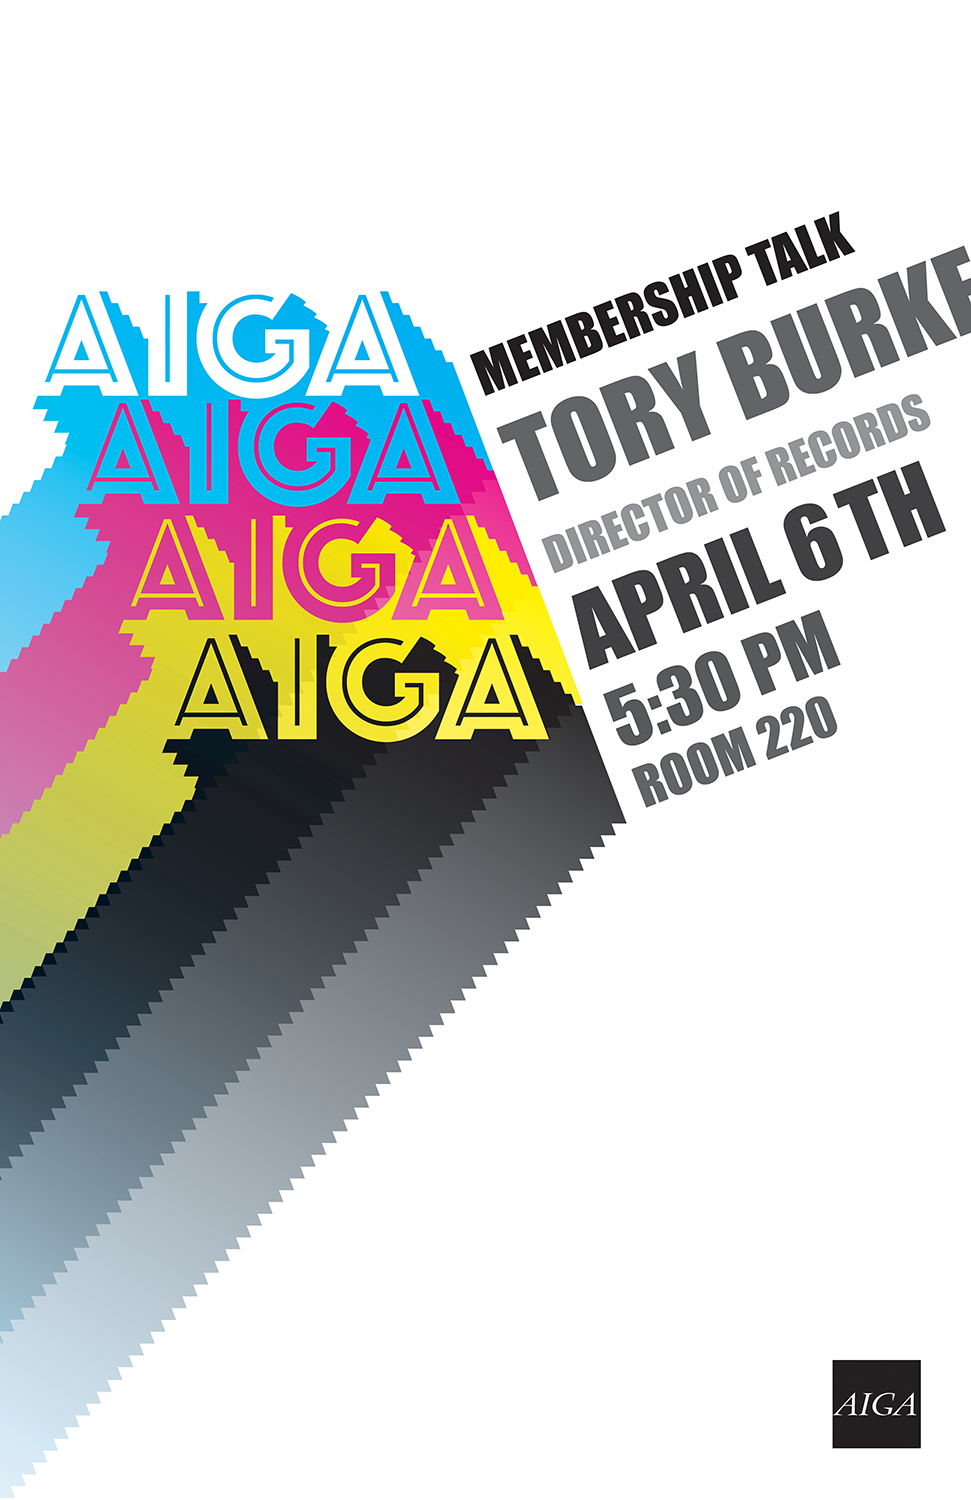 Aiga Tory Burke - A poster created for an AIGA Speaking event.